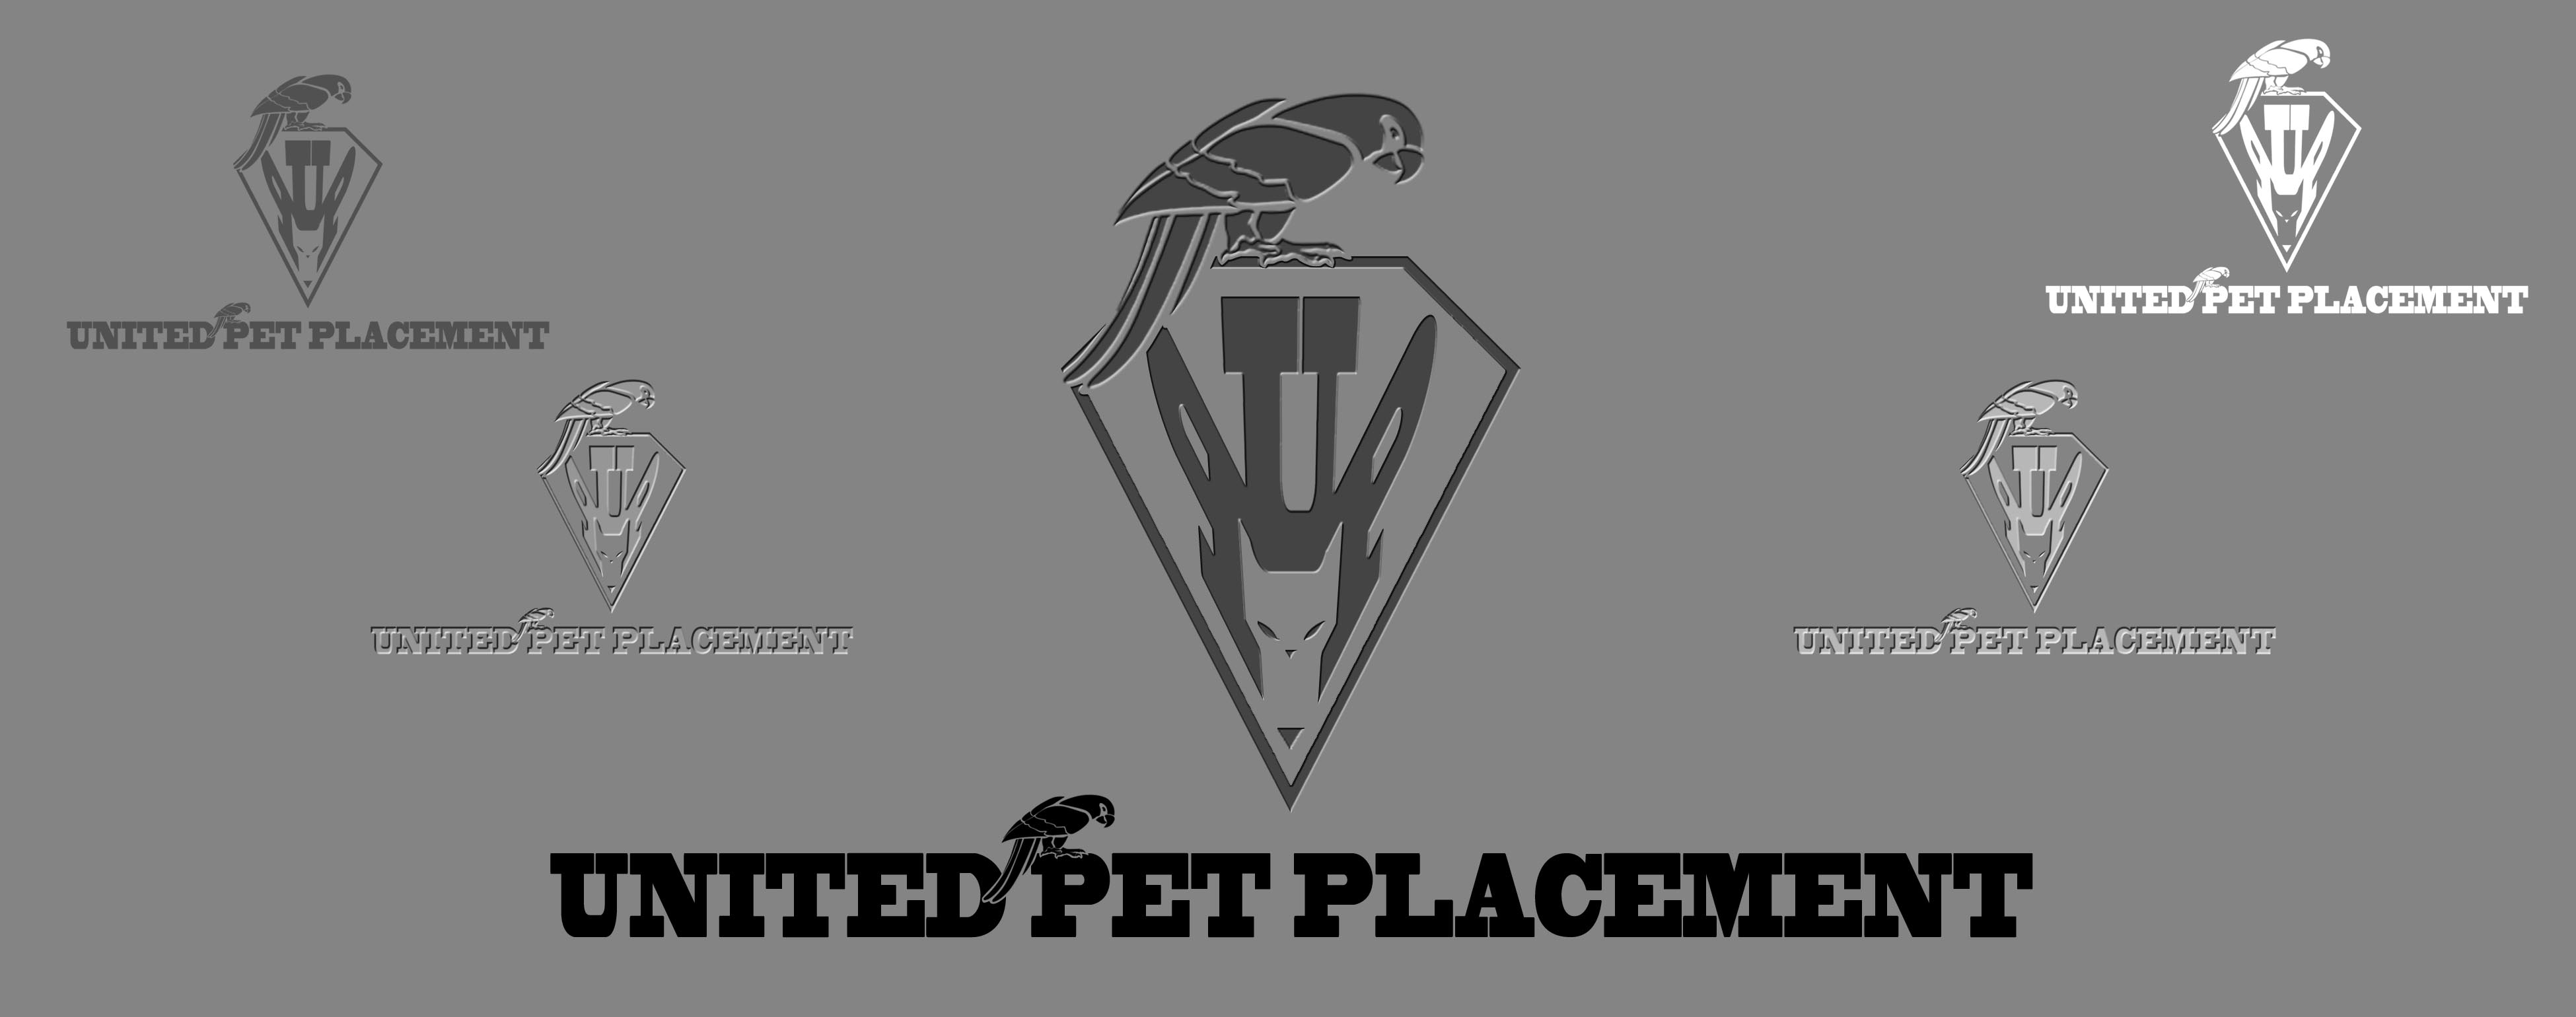 Logo Design by Cesar III Sotto - Entry No. 78 in the Logo Design Contest Artistic Logo Design for united pet placement.